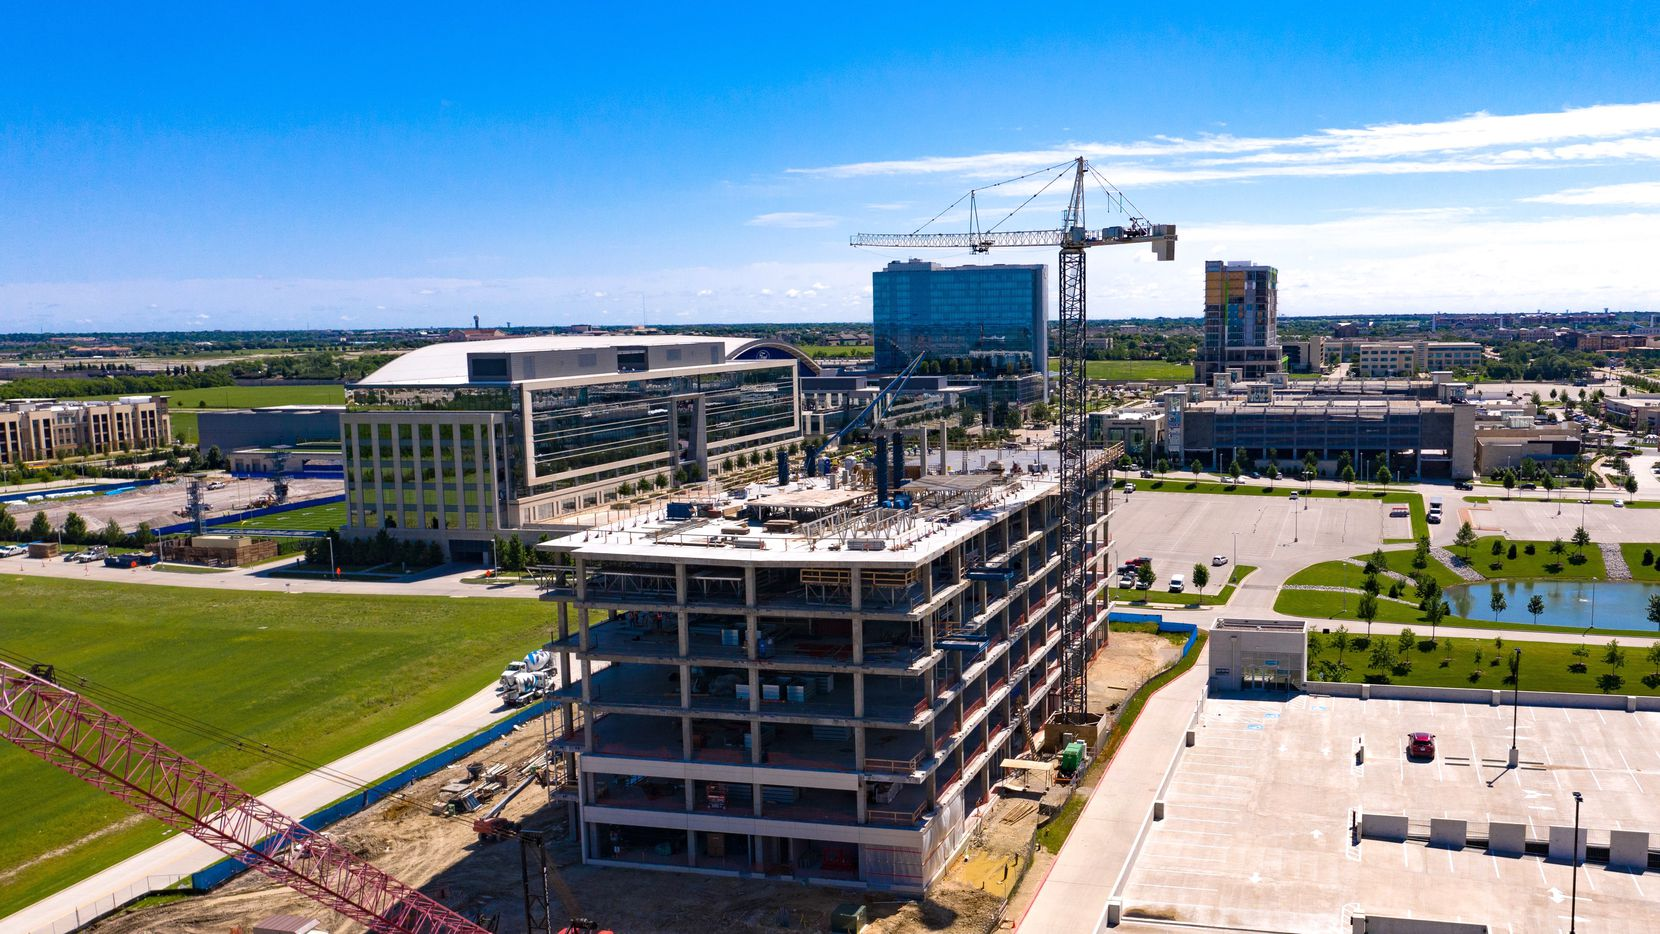 The new Frisco Station building will open in October.